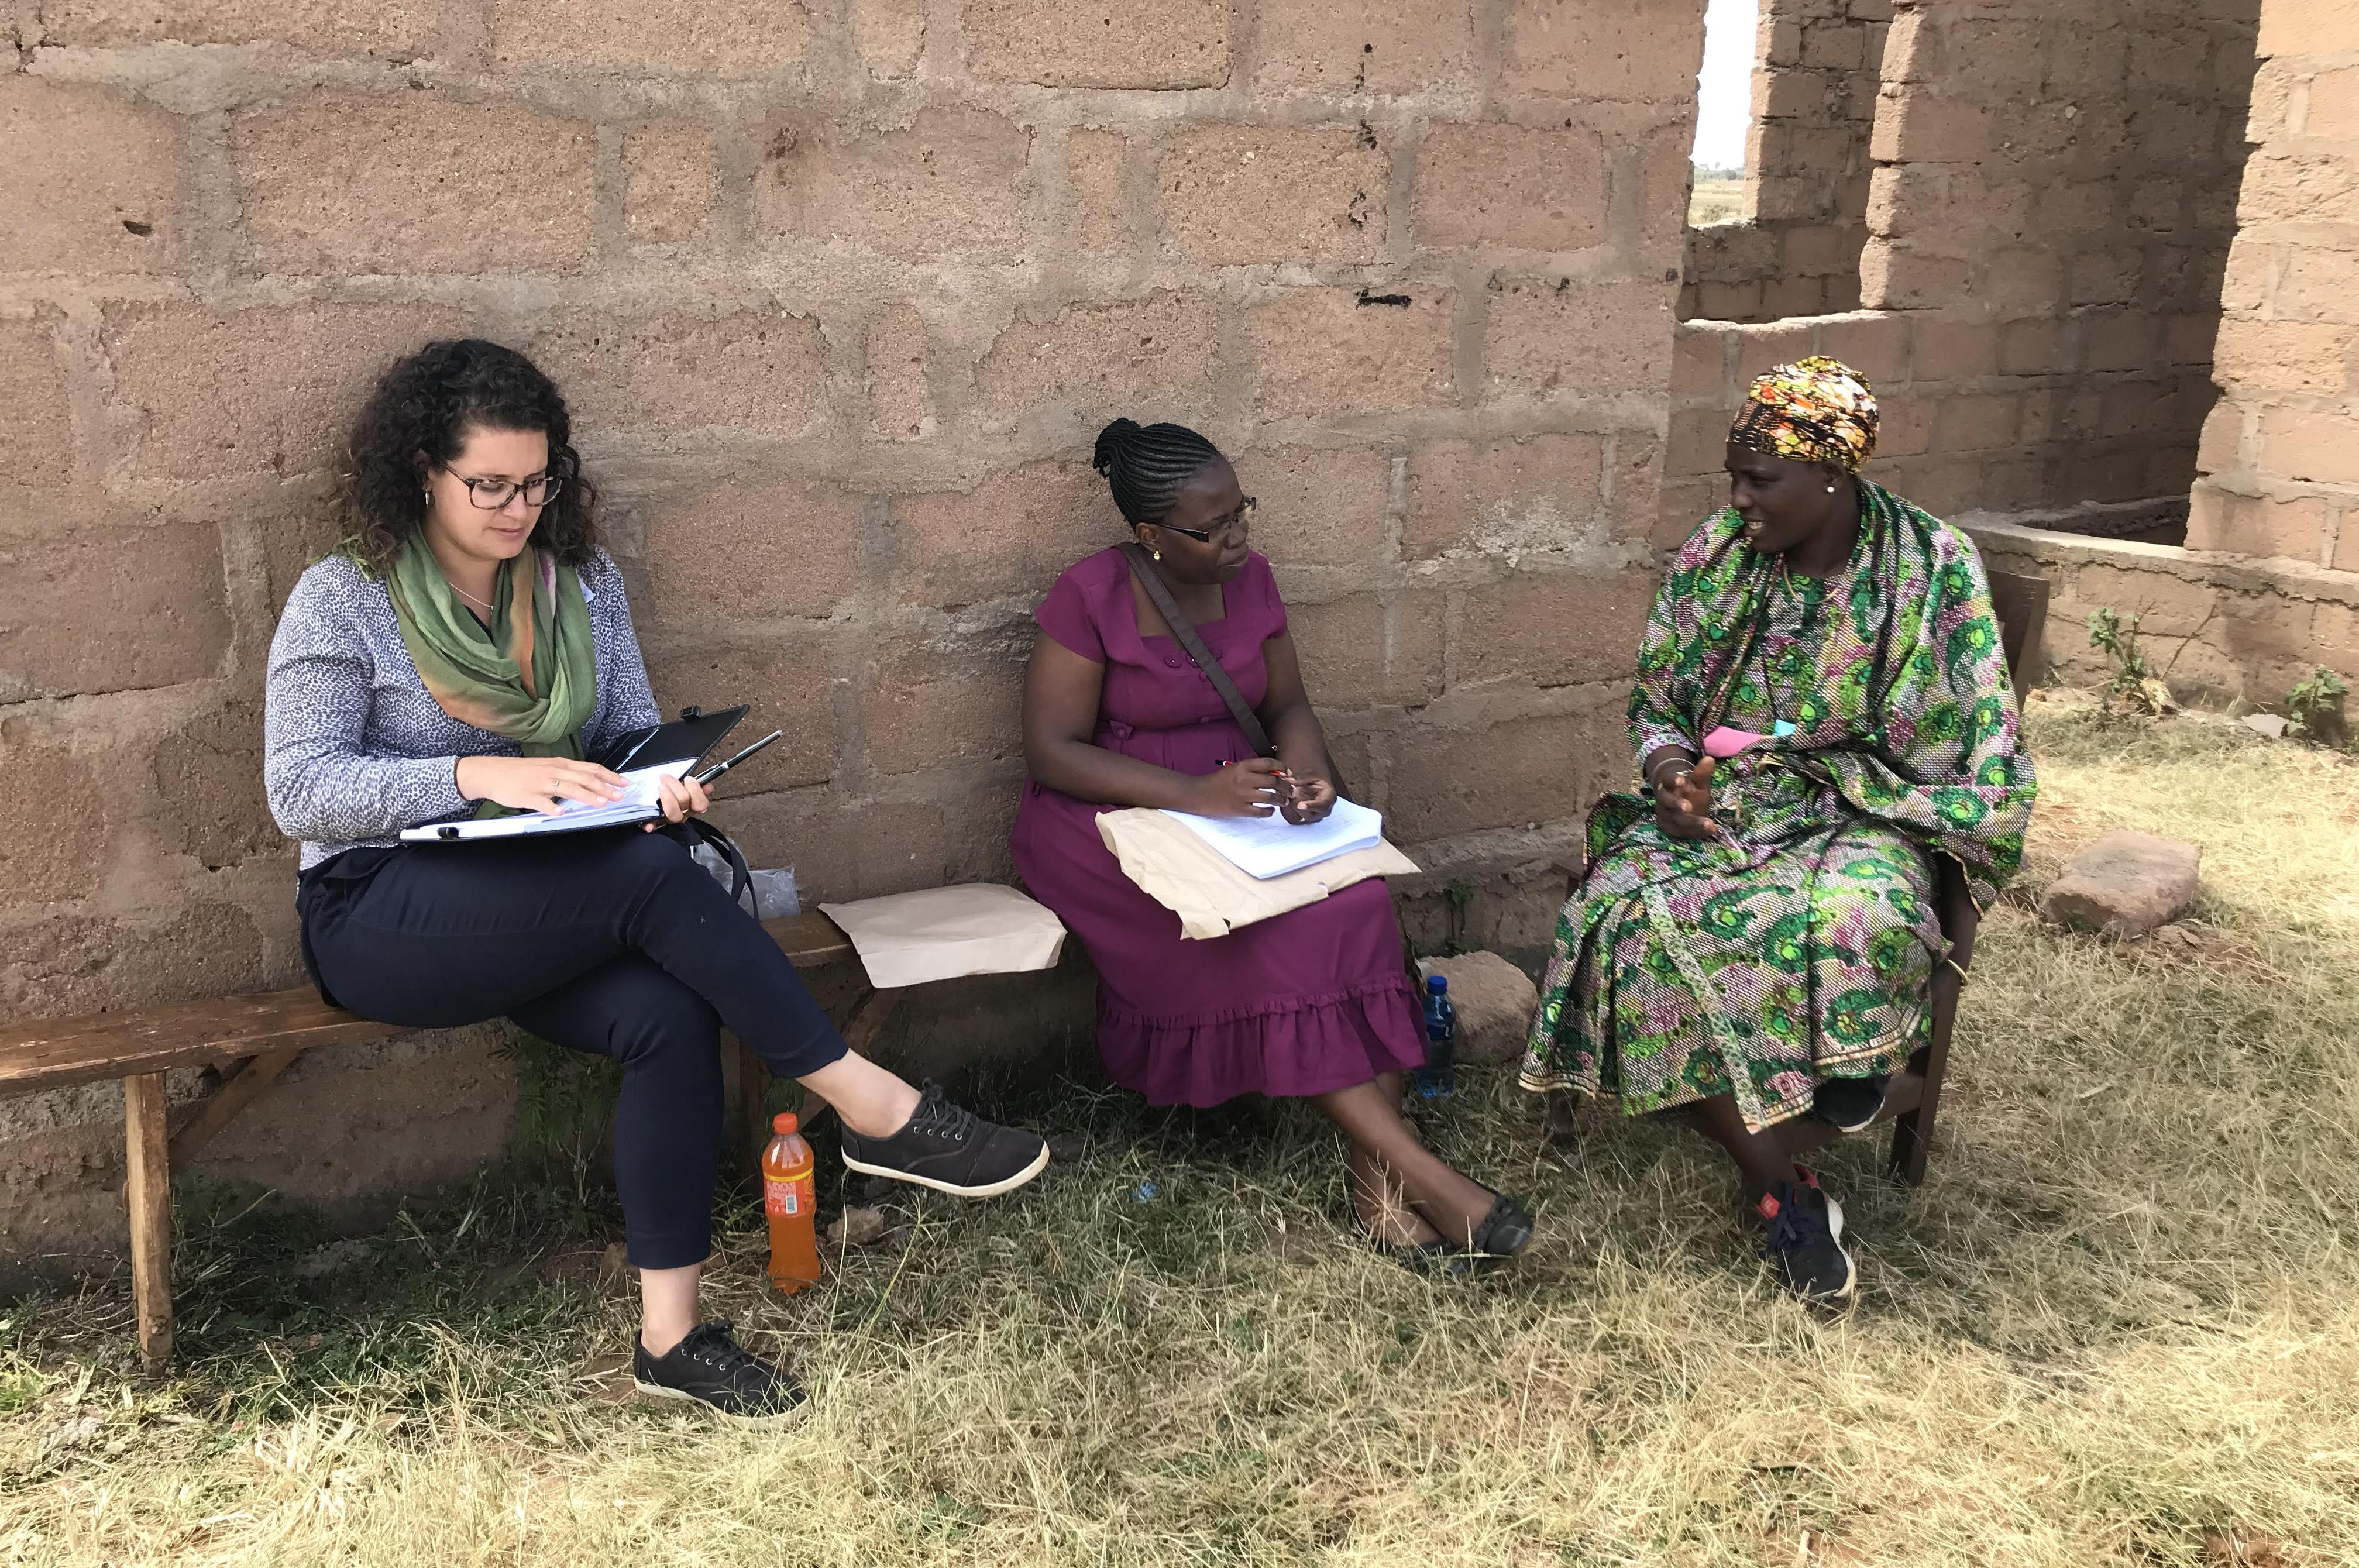 Mary Rodriguez works with community partners in Tanzania to collect data about agricultural needs in an arid area of the country.